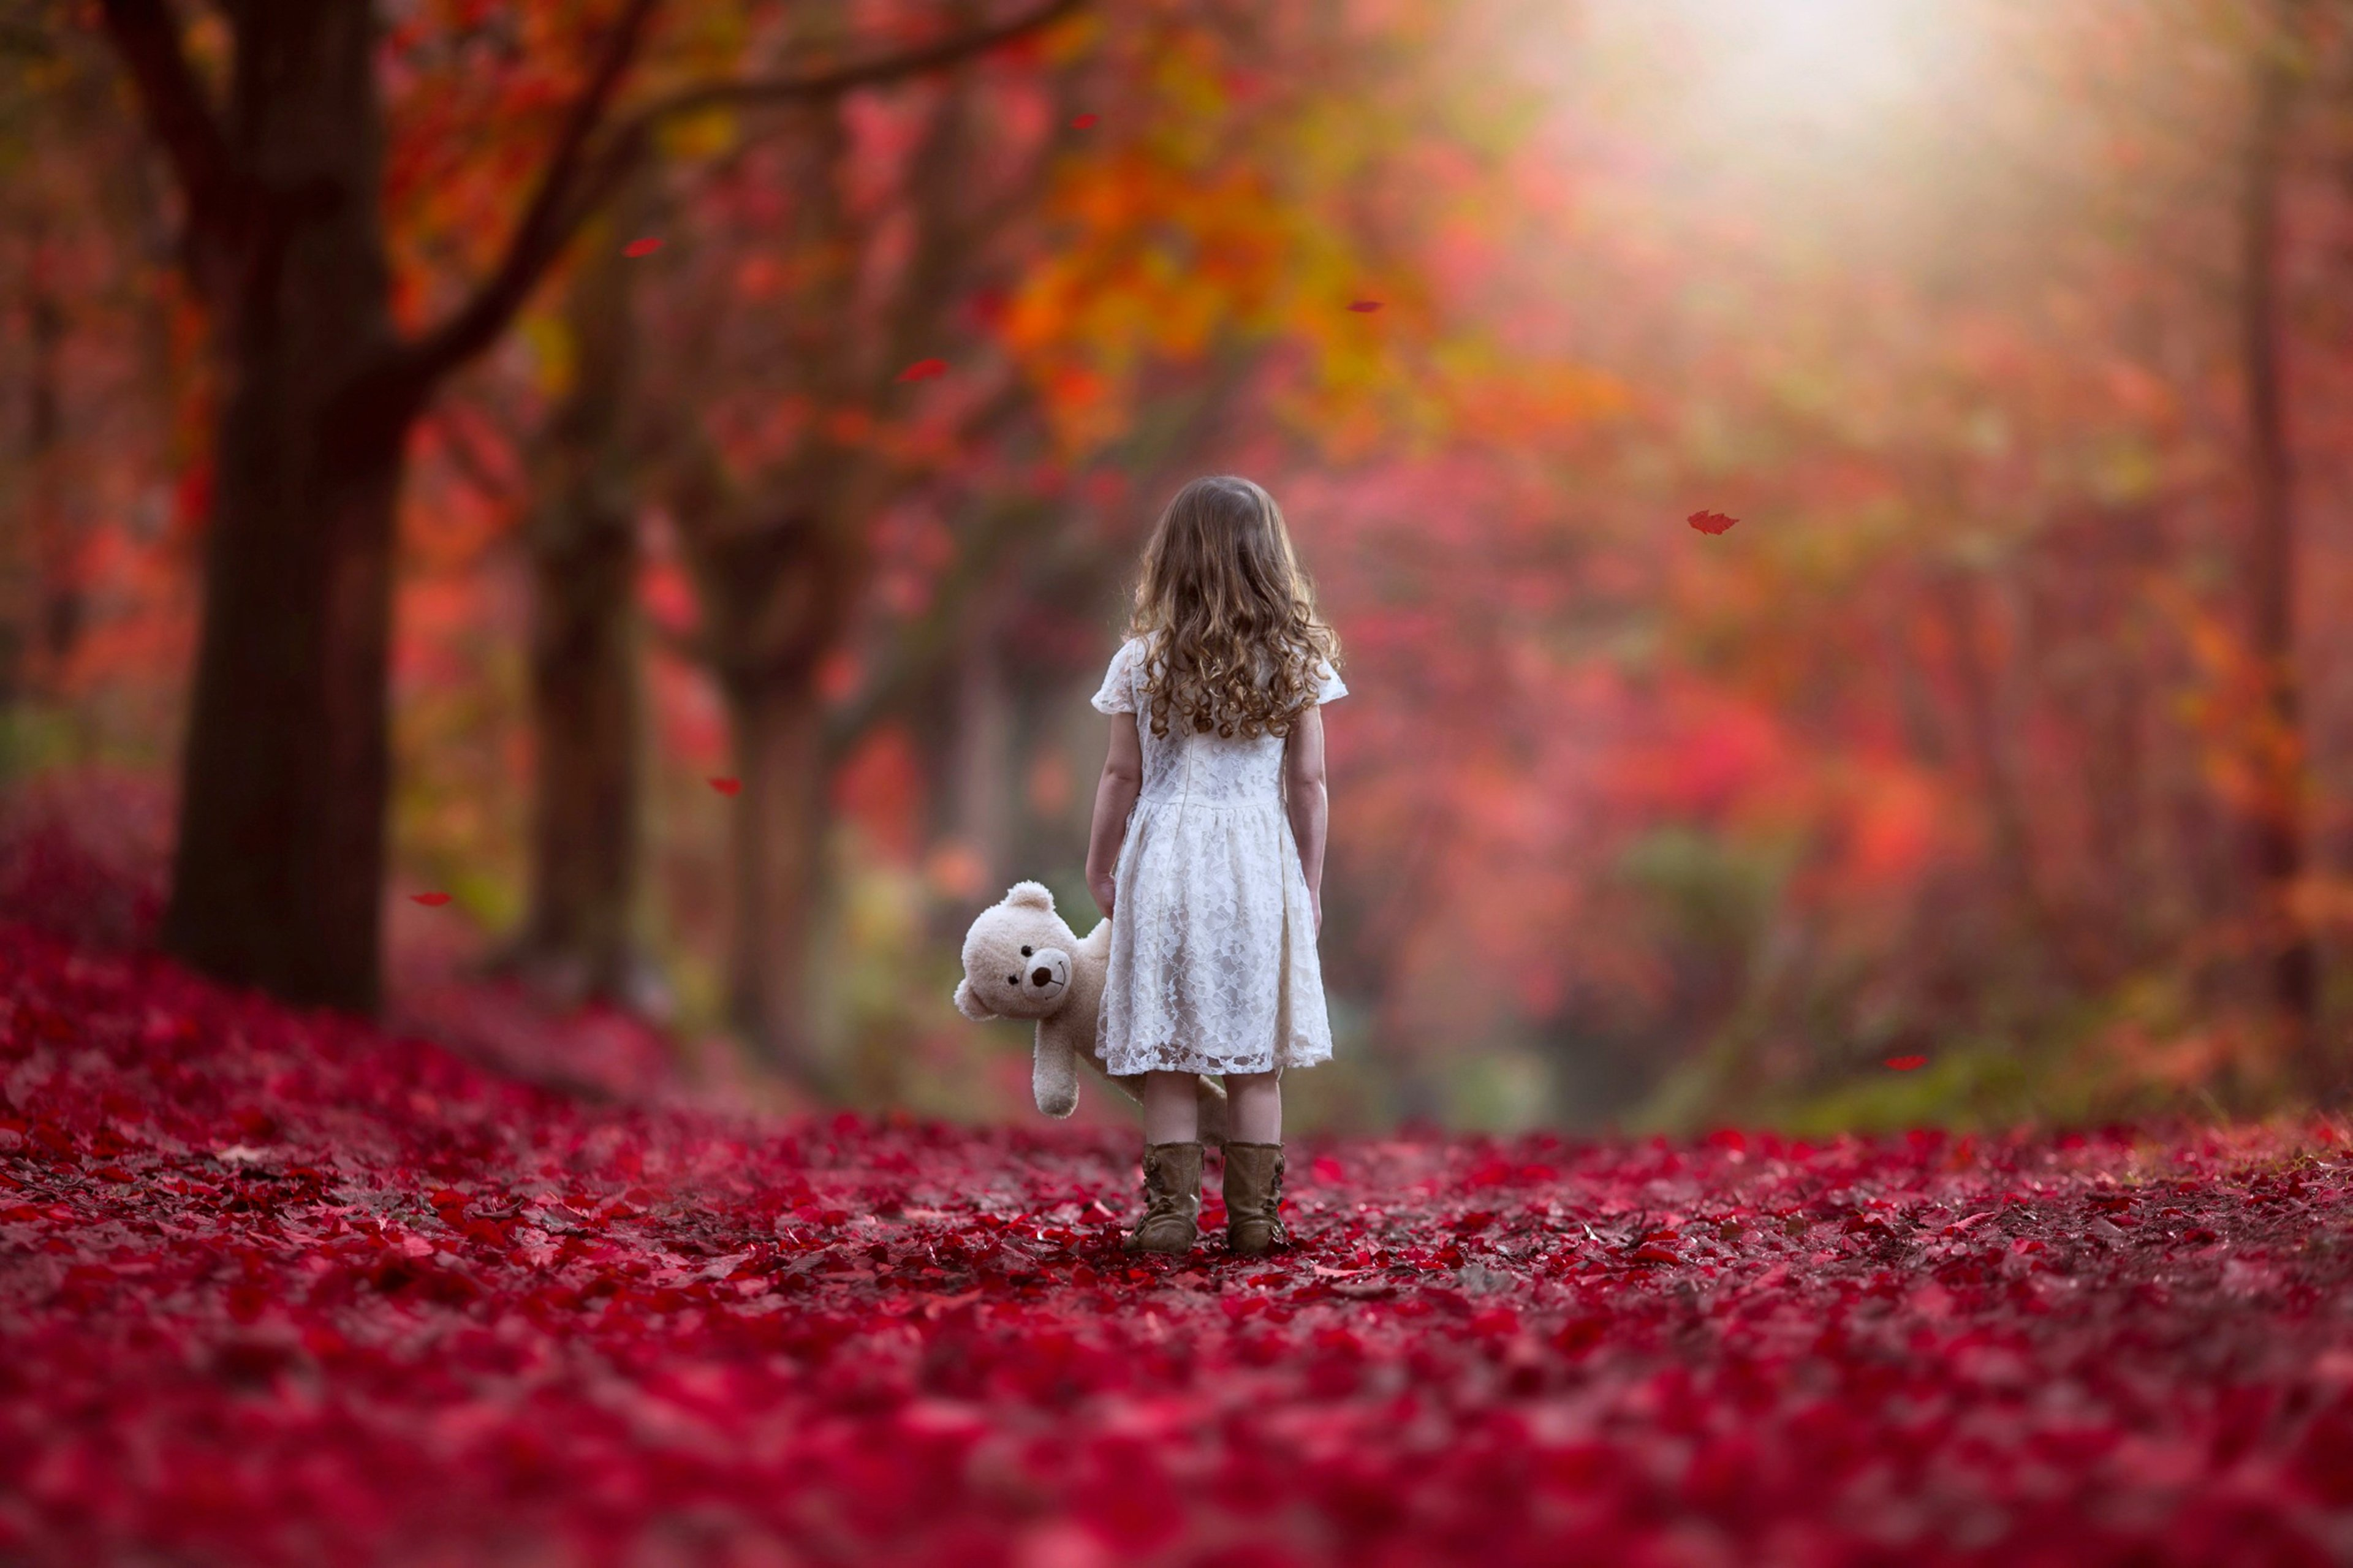 Wallpaper Girl Sad Alone Autumn Littel Girl Forest Sad Lonely Alone Red Nature